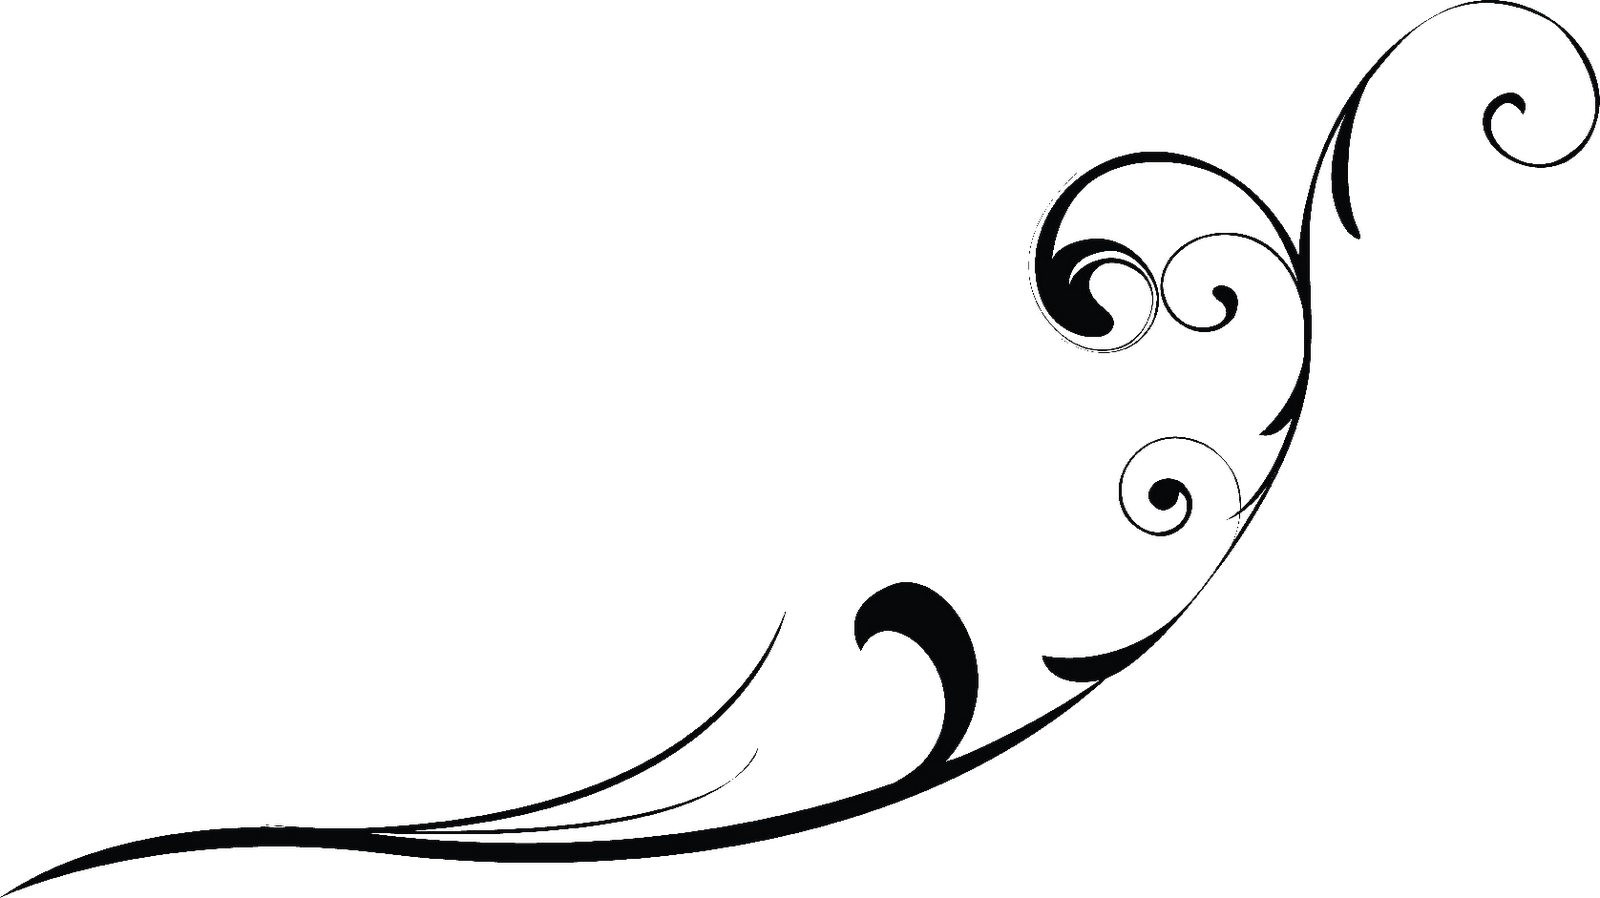 Black swirl designs png. Free icons and backgrounds